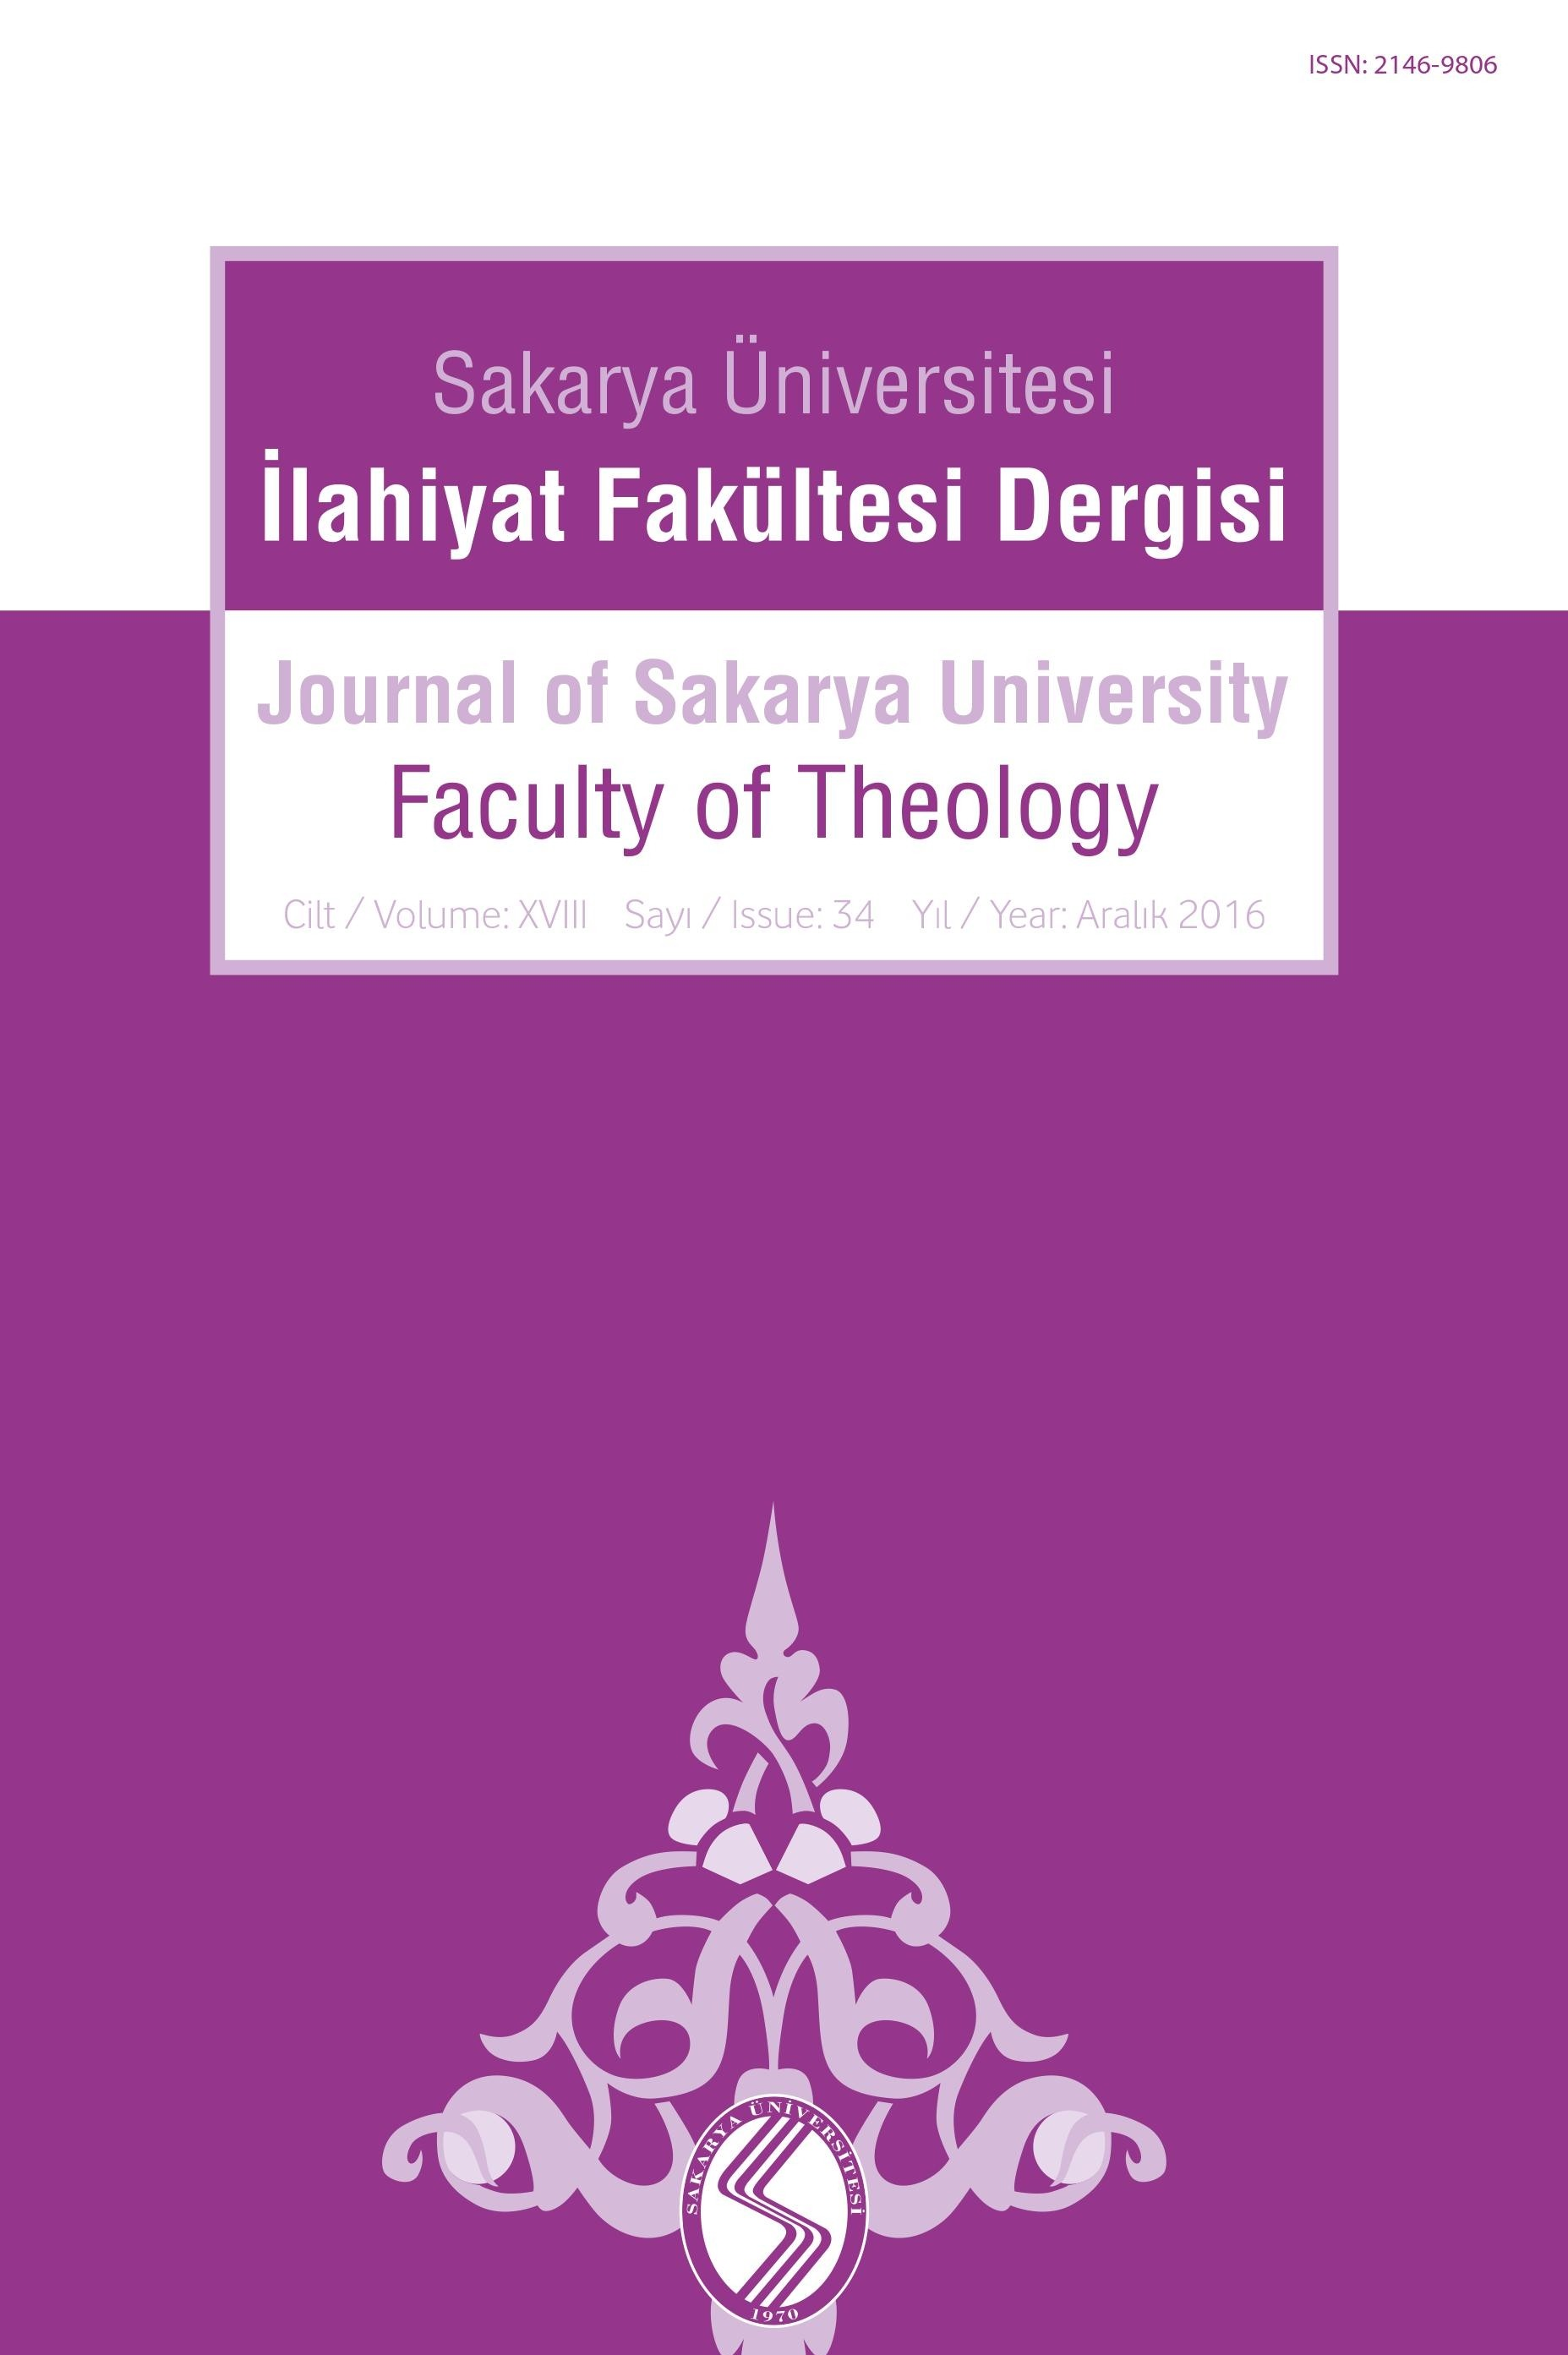 Journal of Sakarya University Faculty of Theology (SAUIFD)